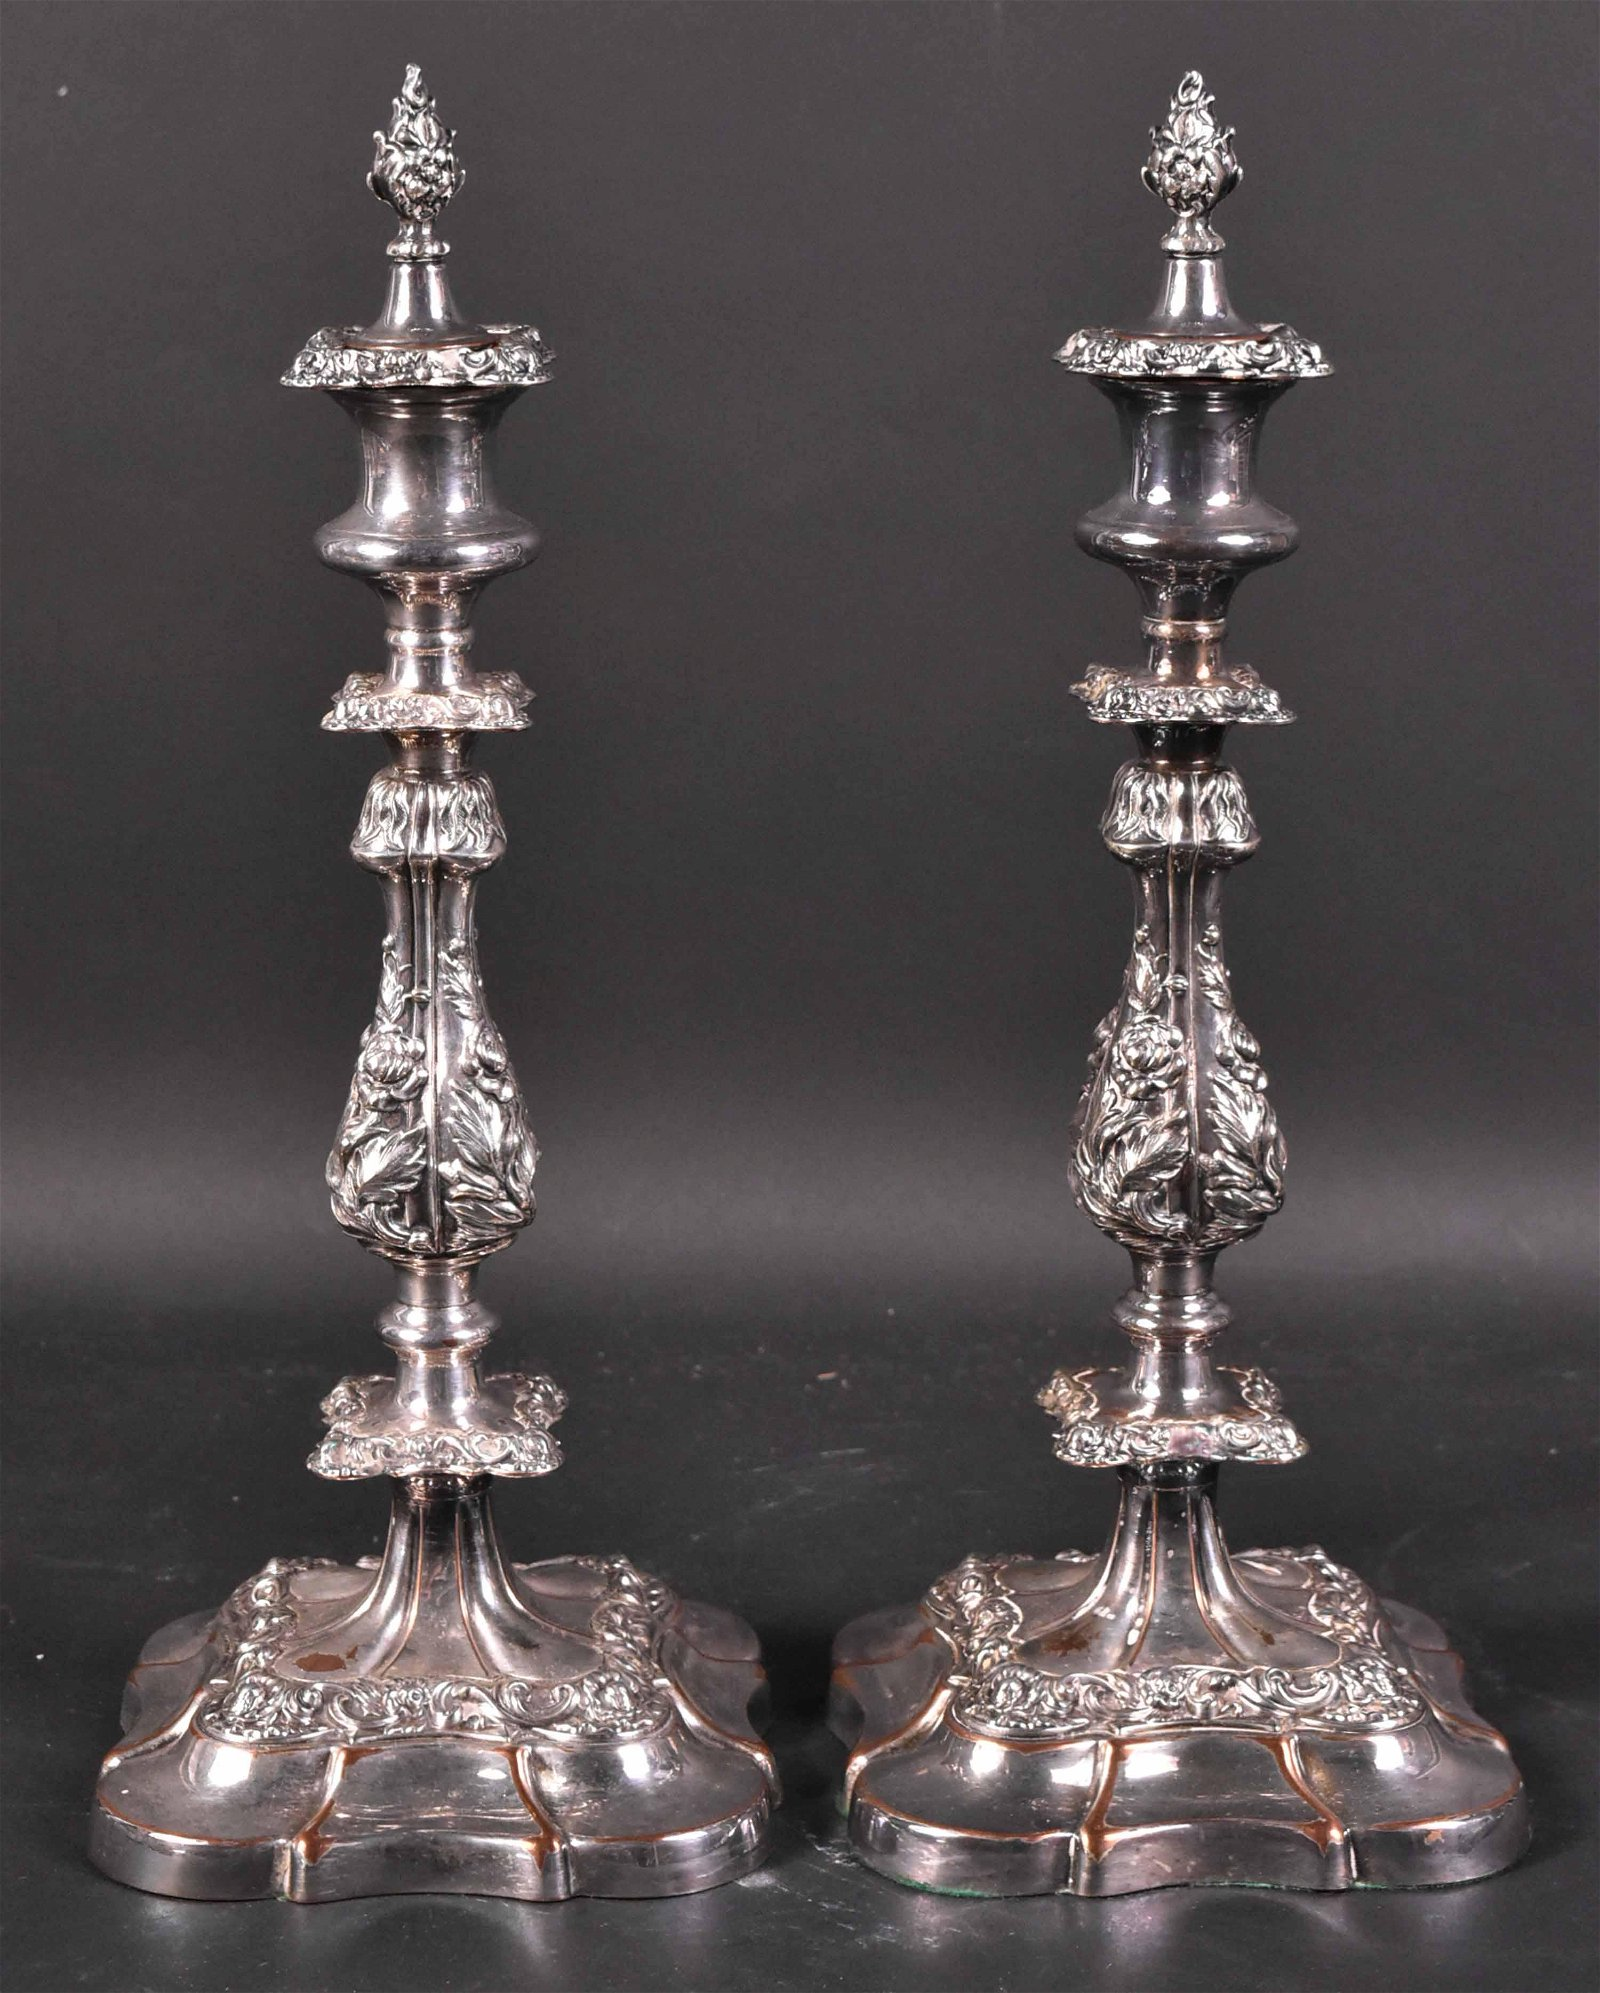 Pair of Silver Plated Candlesticks with Finials